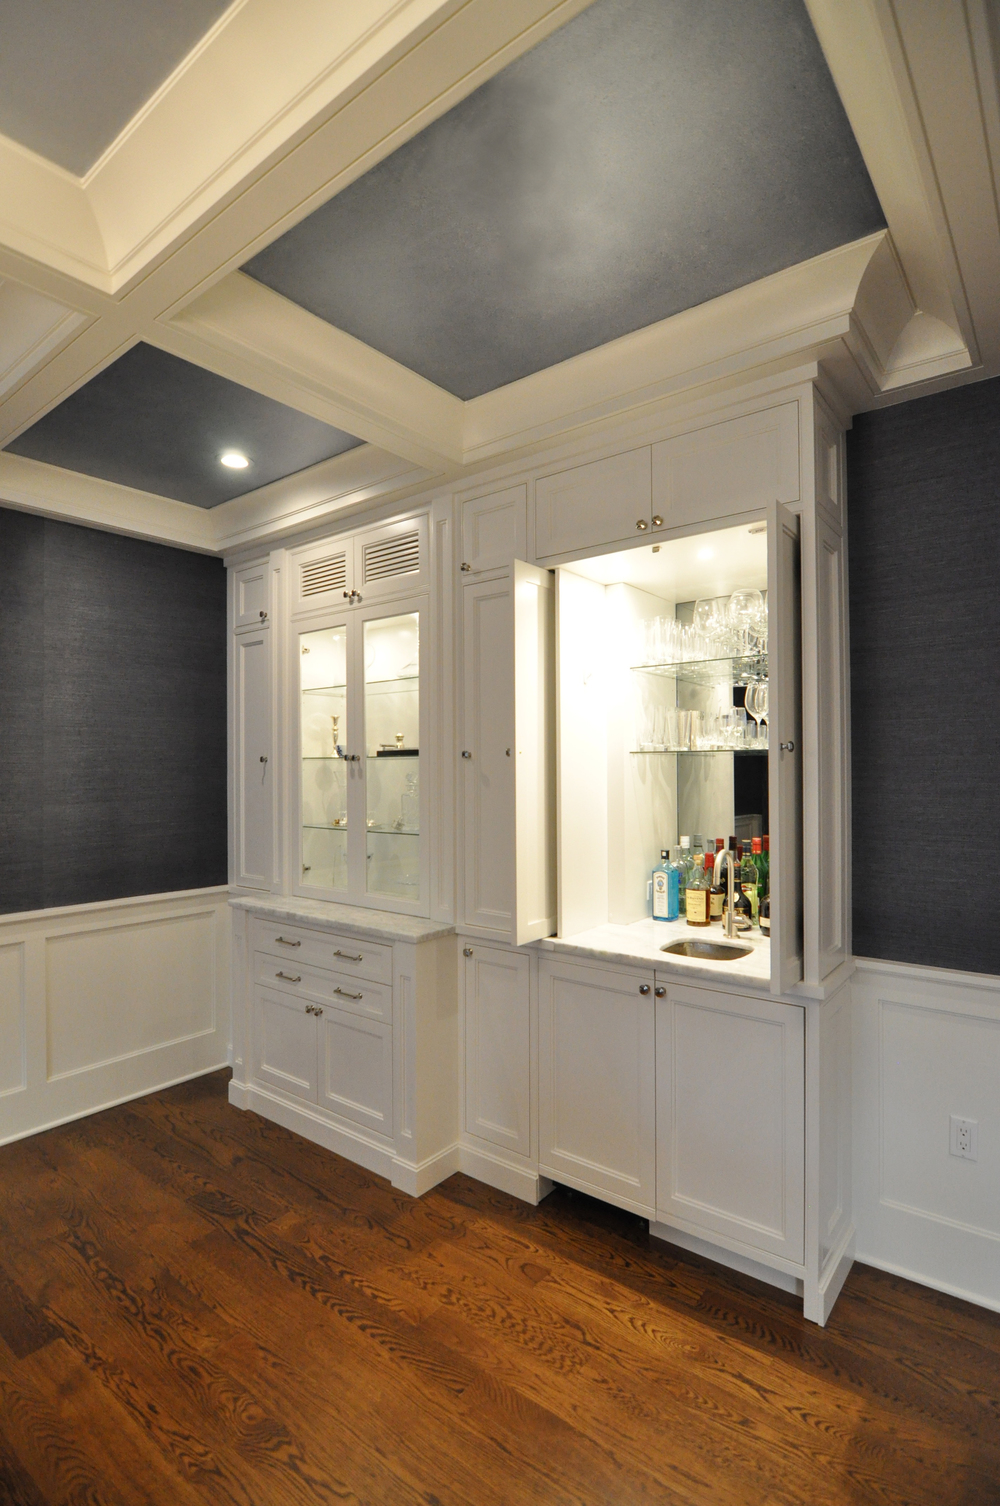 KAM DESIGN_Dining Room Millwork_Custom White Cabinet_Wet Bar_Coffered Ceiling_Faux Paint Finish_Wainscot - 1.jpg